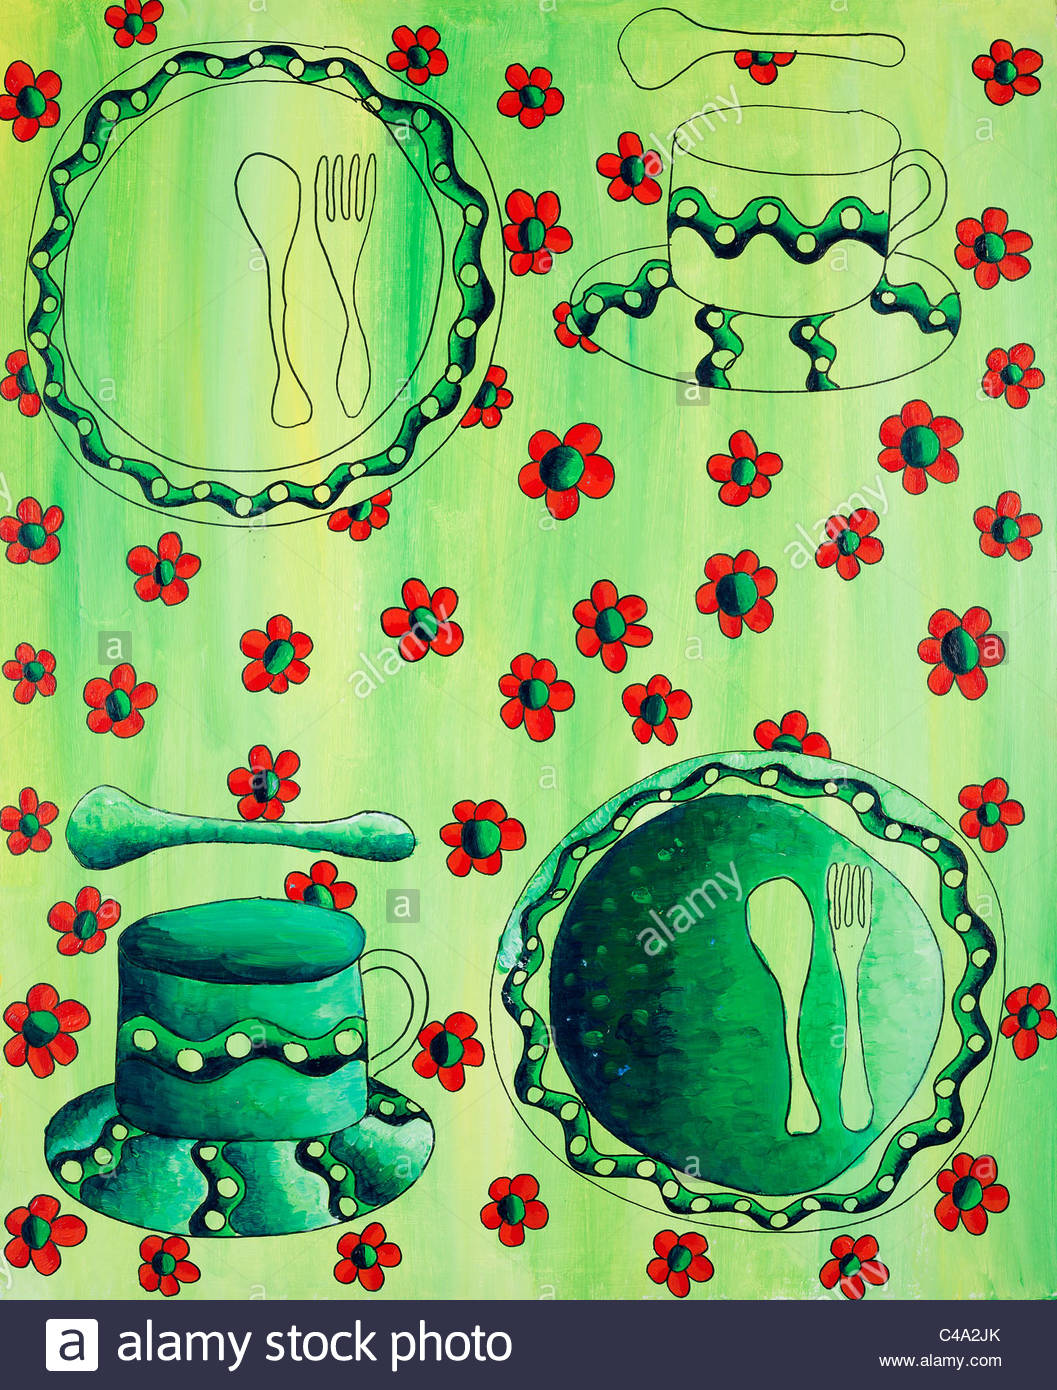 Acrylic painting of a flowered tablecloth with cups and plates - Stock Image